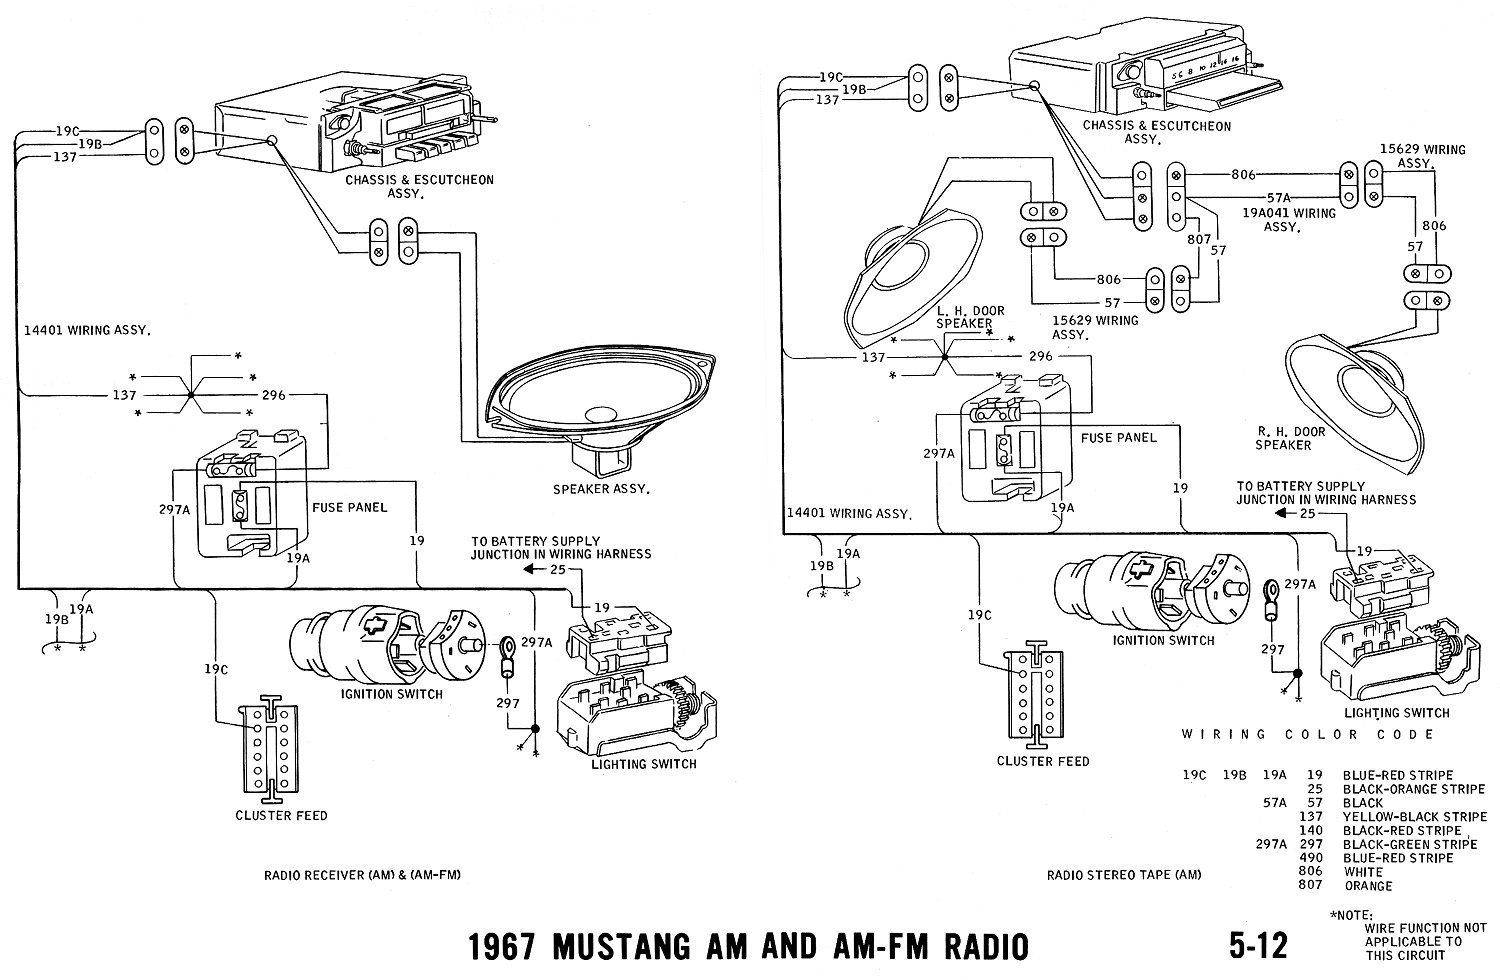 1968 Camaro Radio Wiring Diagram Expert Diagrams Harness Head Lamp 1967 Mustang And Vacuum Average Joe Restoration